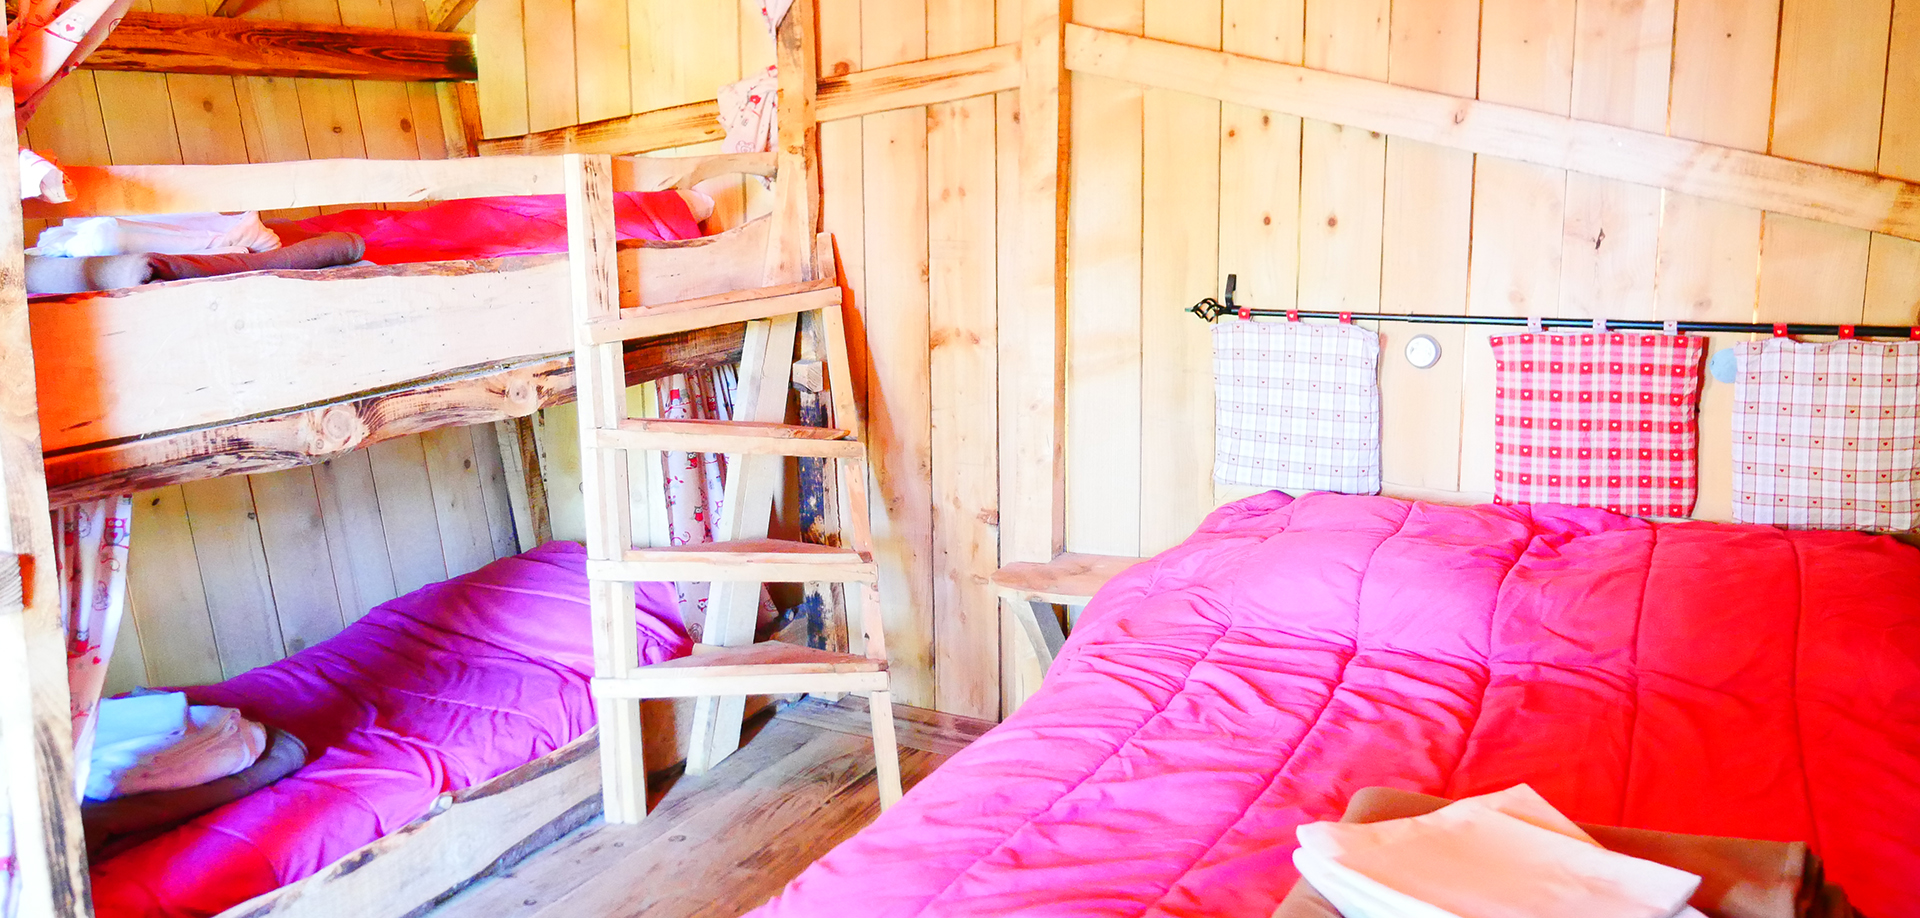 Inside of the Wooden Hut of Gretel with kitchen area, dinner place, double bed and bunk beds, rental of atypical cabins at the Campsite Les Castors in the Higher Rhine